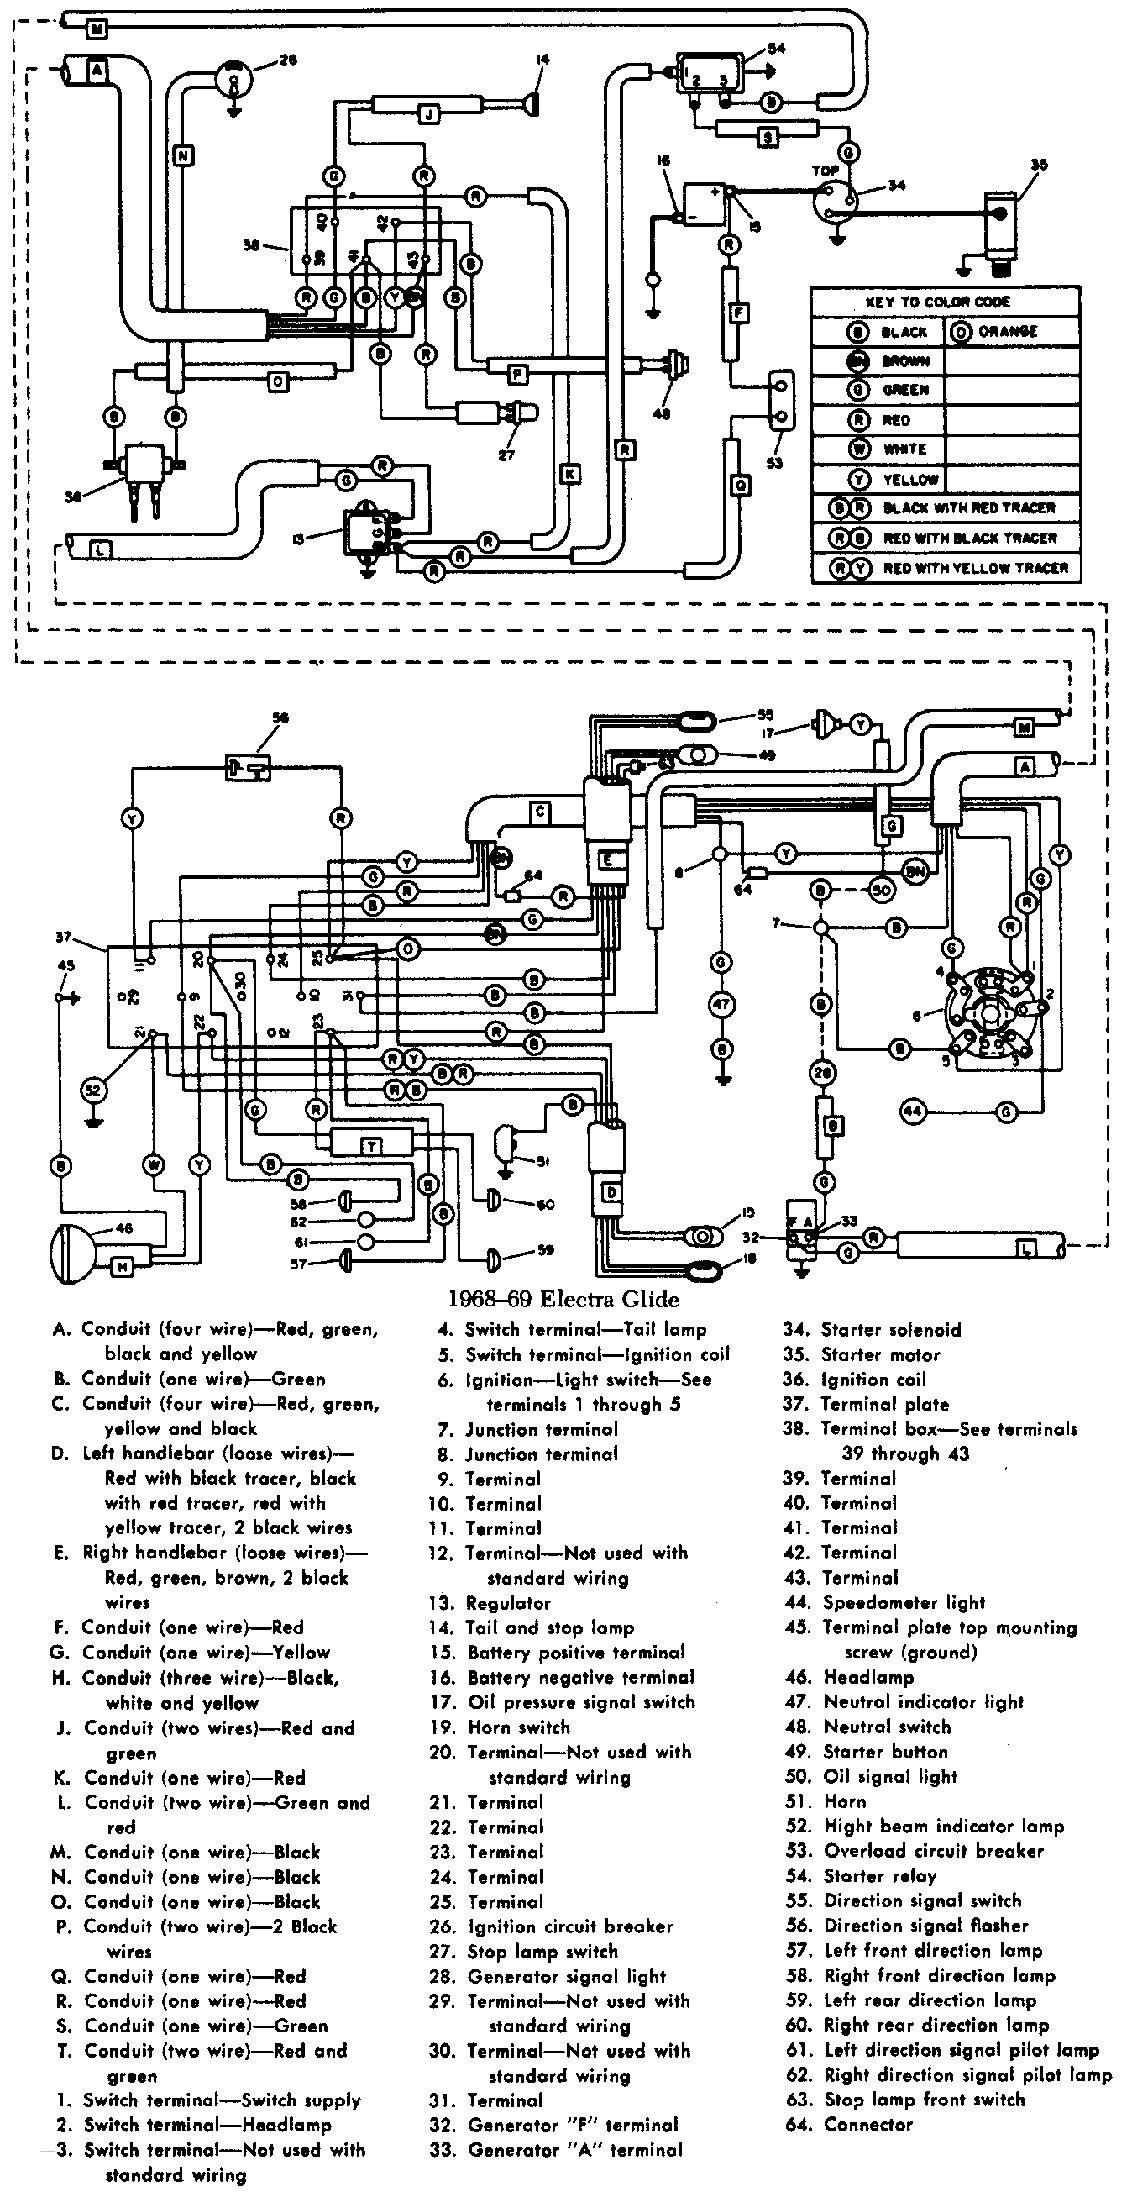 Harley Ignition Switch Wiring Diagram Collection | Wiring ... on dodge electronic ignition wiring diagram, chrysler electronic ignition wiring diagram, ford electronic ignition wiring diagram, toyota electronic ignition wiring diagram,